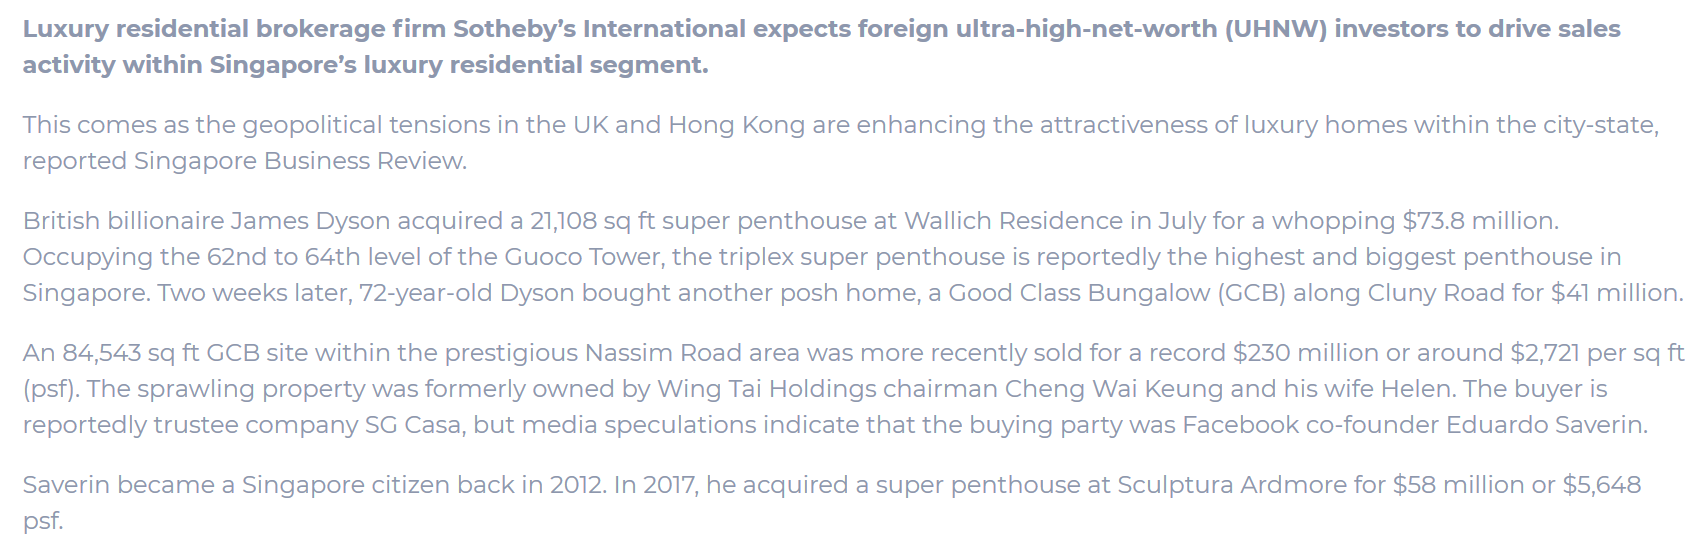 haus-on-handy-ultra-rich-buys-singapore-homes-1-singapore